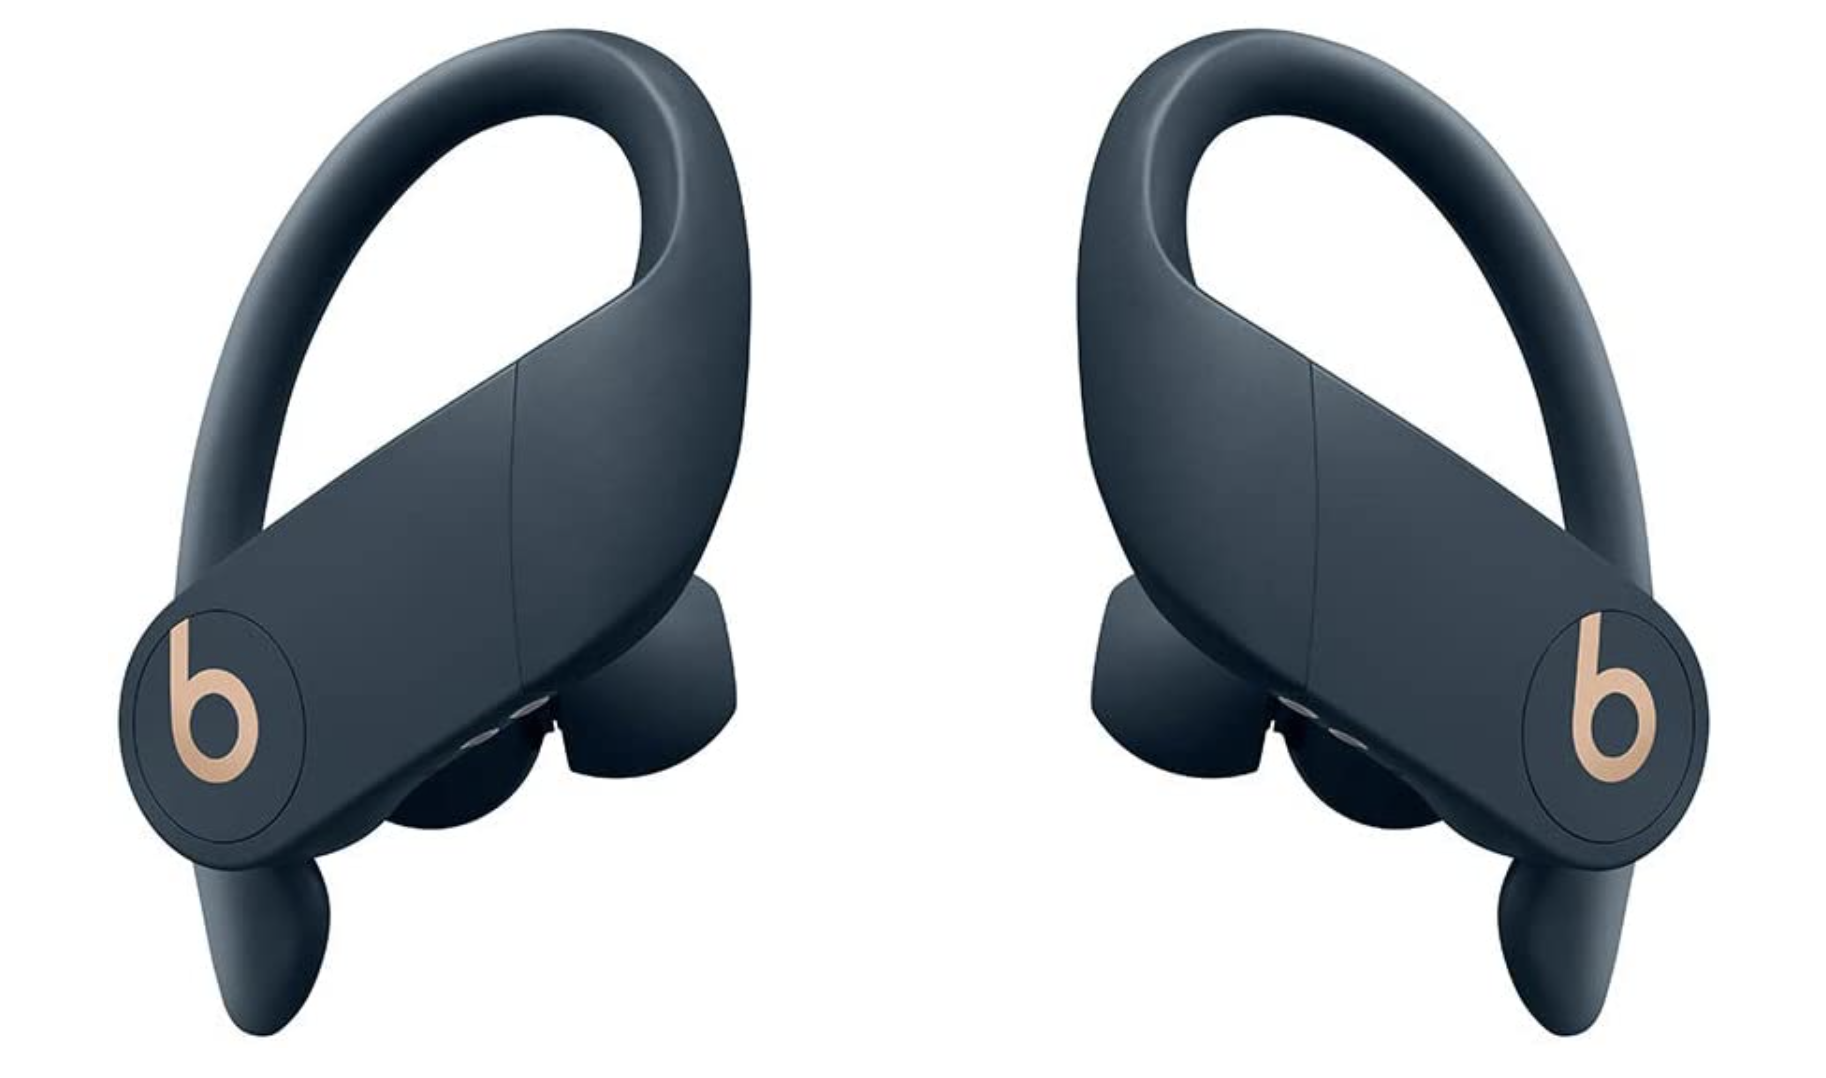 Save 40% on the Powerbeats Pro and Solo3 headphones for Black Friday